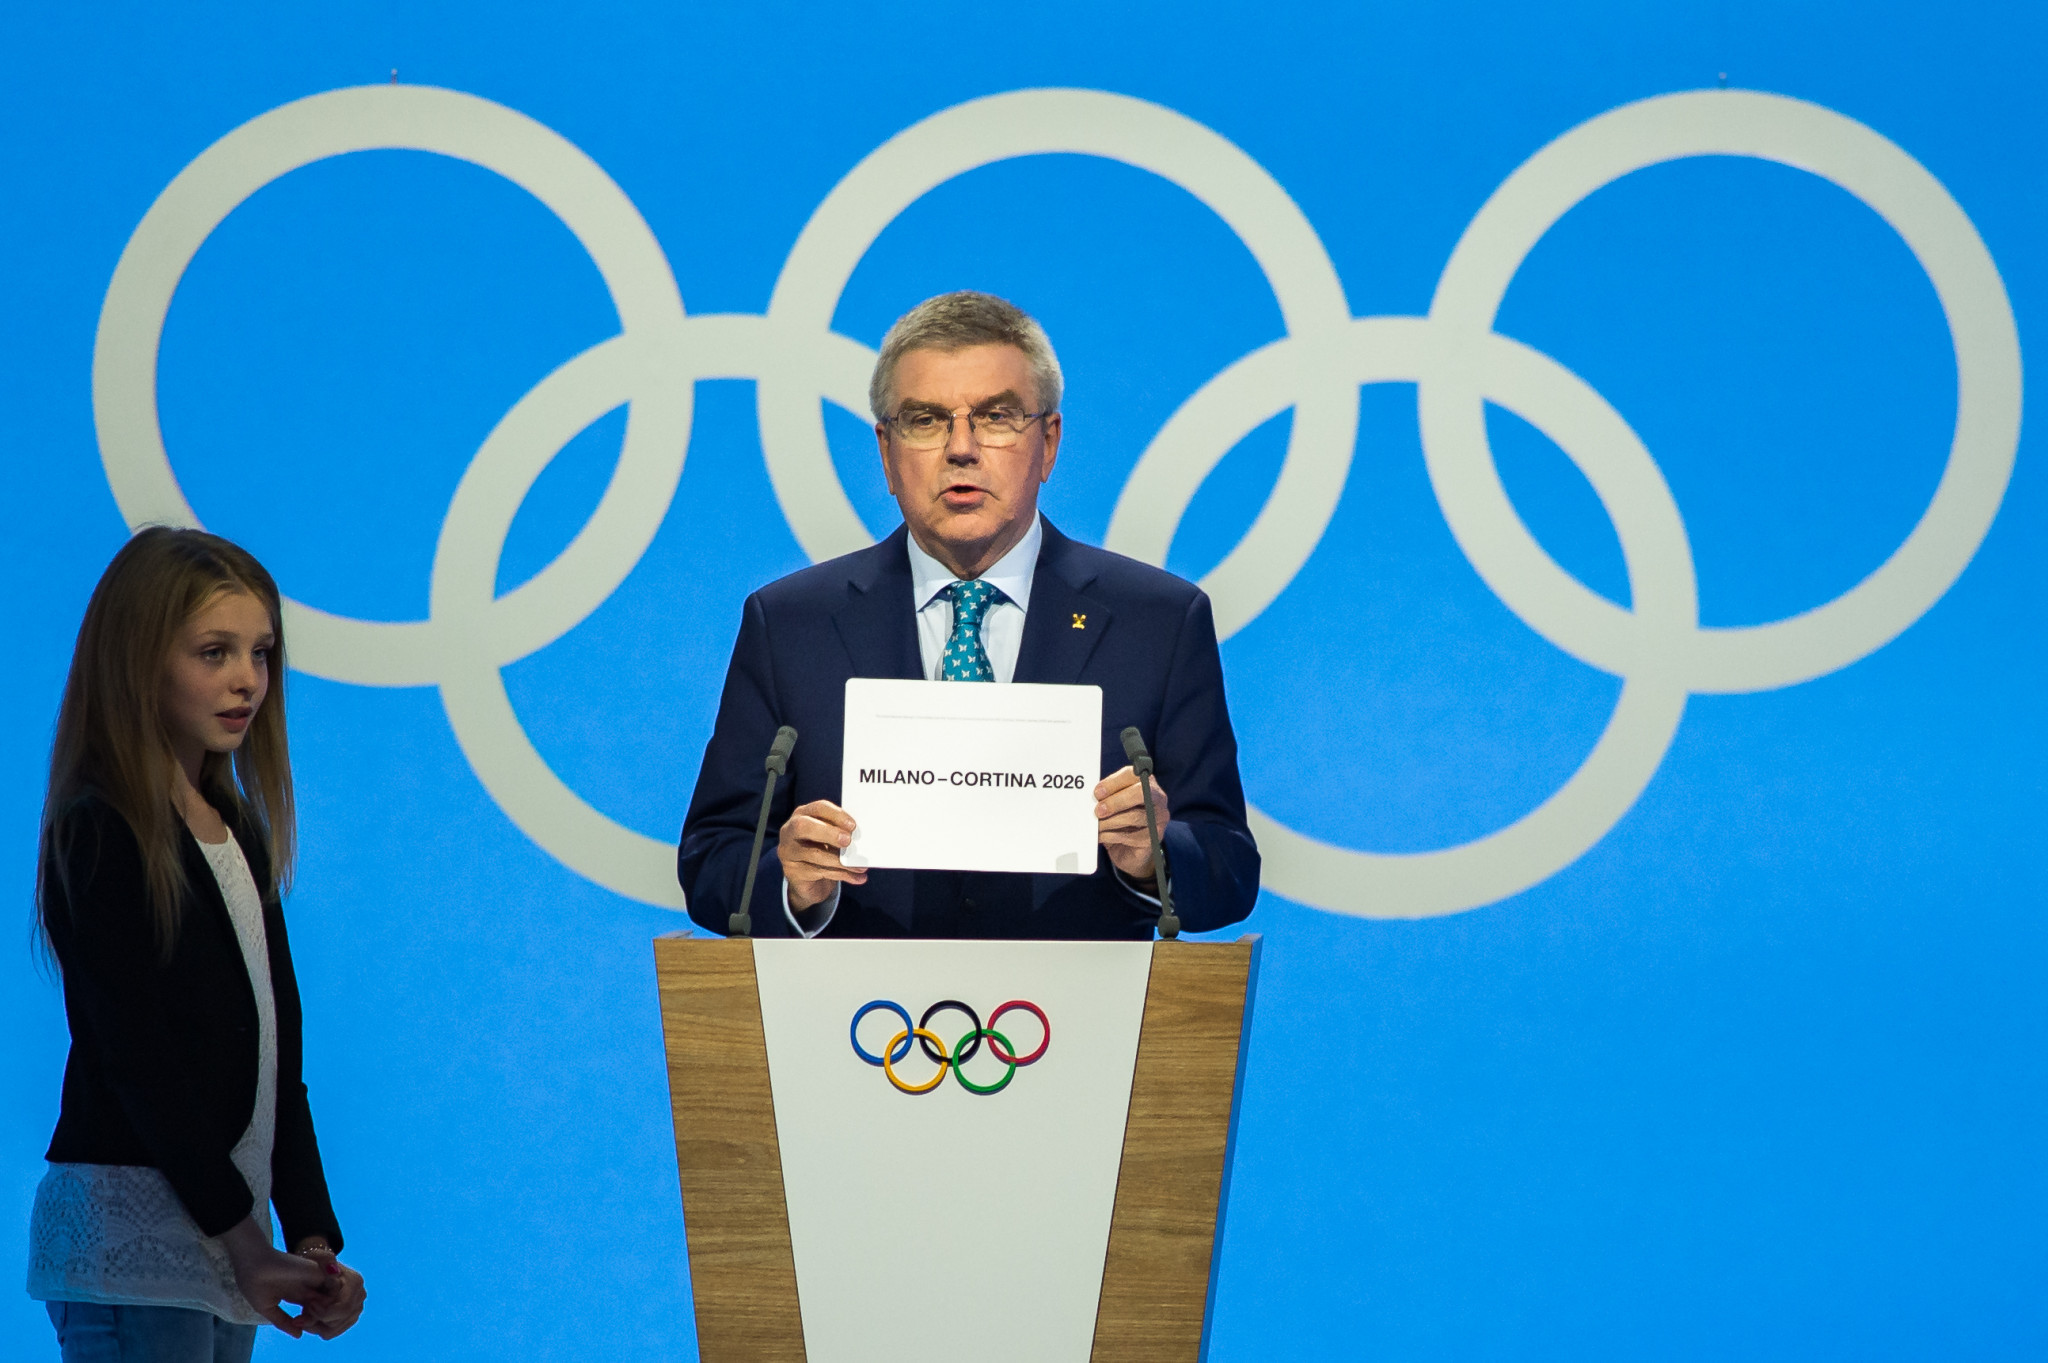 An academic paper has called on the IOC to cover 10 per cent of any cost overruns for the Olympic Games ©Getty Images